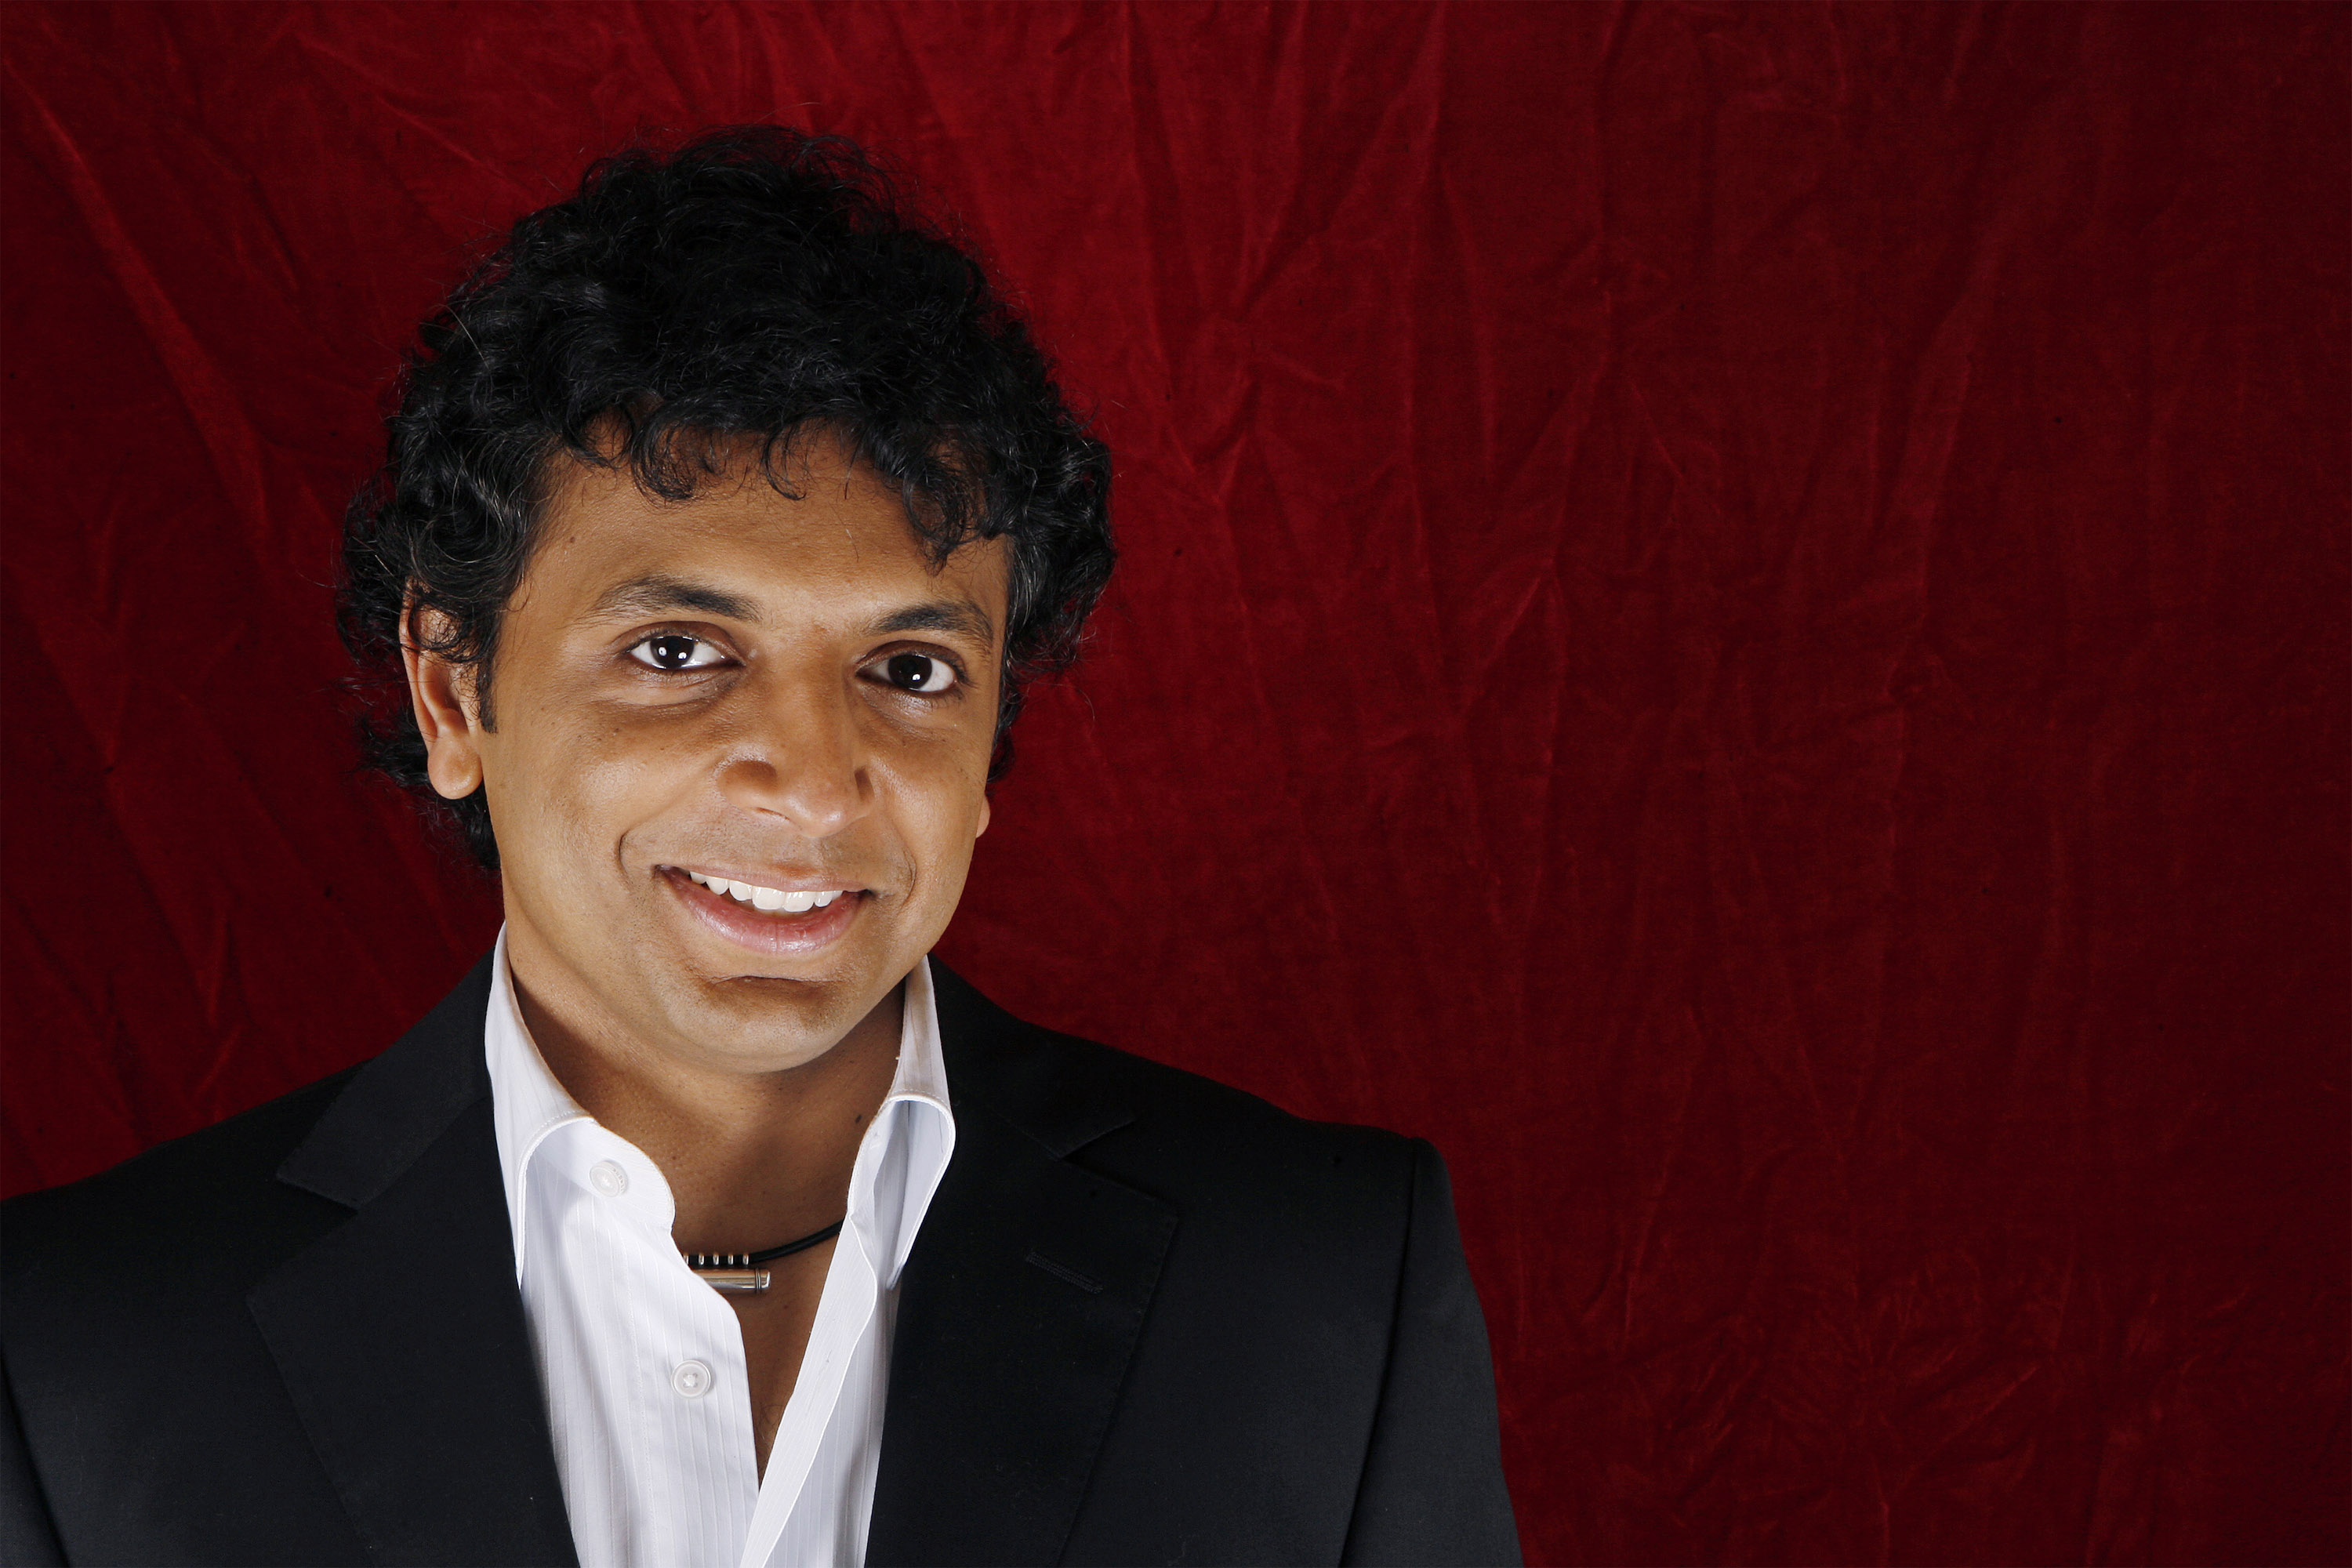 """Director M. Night Shyamalan poses for a portrait during a press day promoting his new film """"The Happening"""" in New York June 9, 2008. REUTERS/Lucas Jackson (UNITED STATES) - RTX6P8Q"""